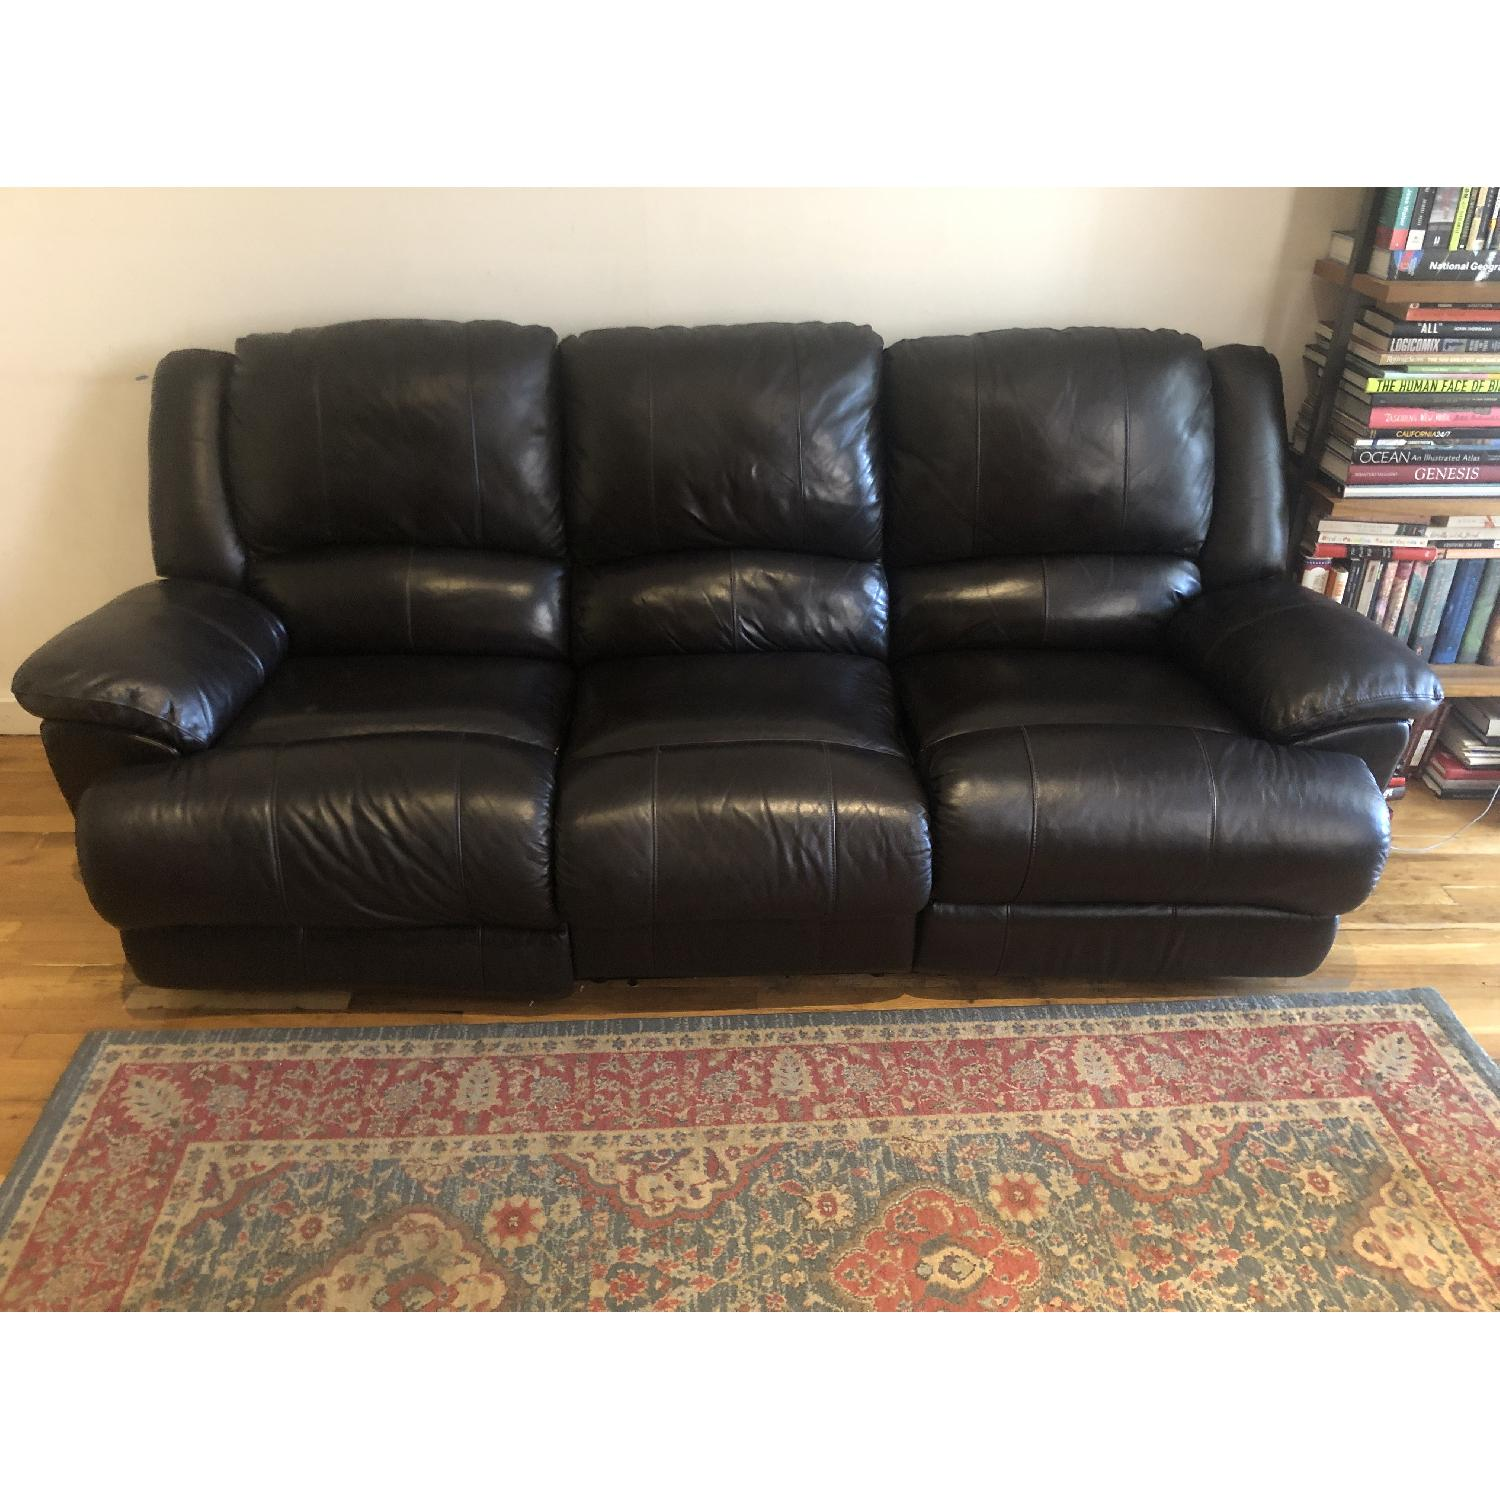 Jennifer Convertibles Reclining Leather 3 Seater Sofa